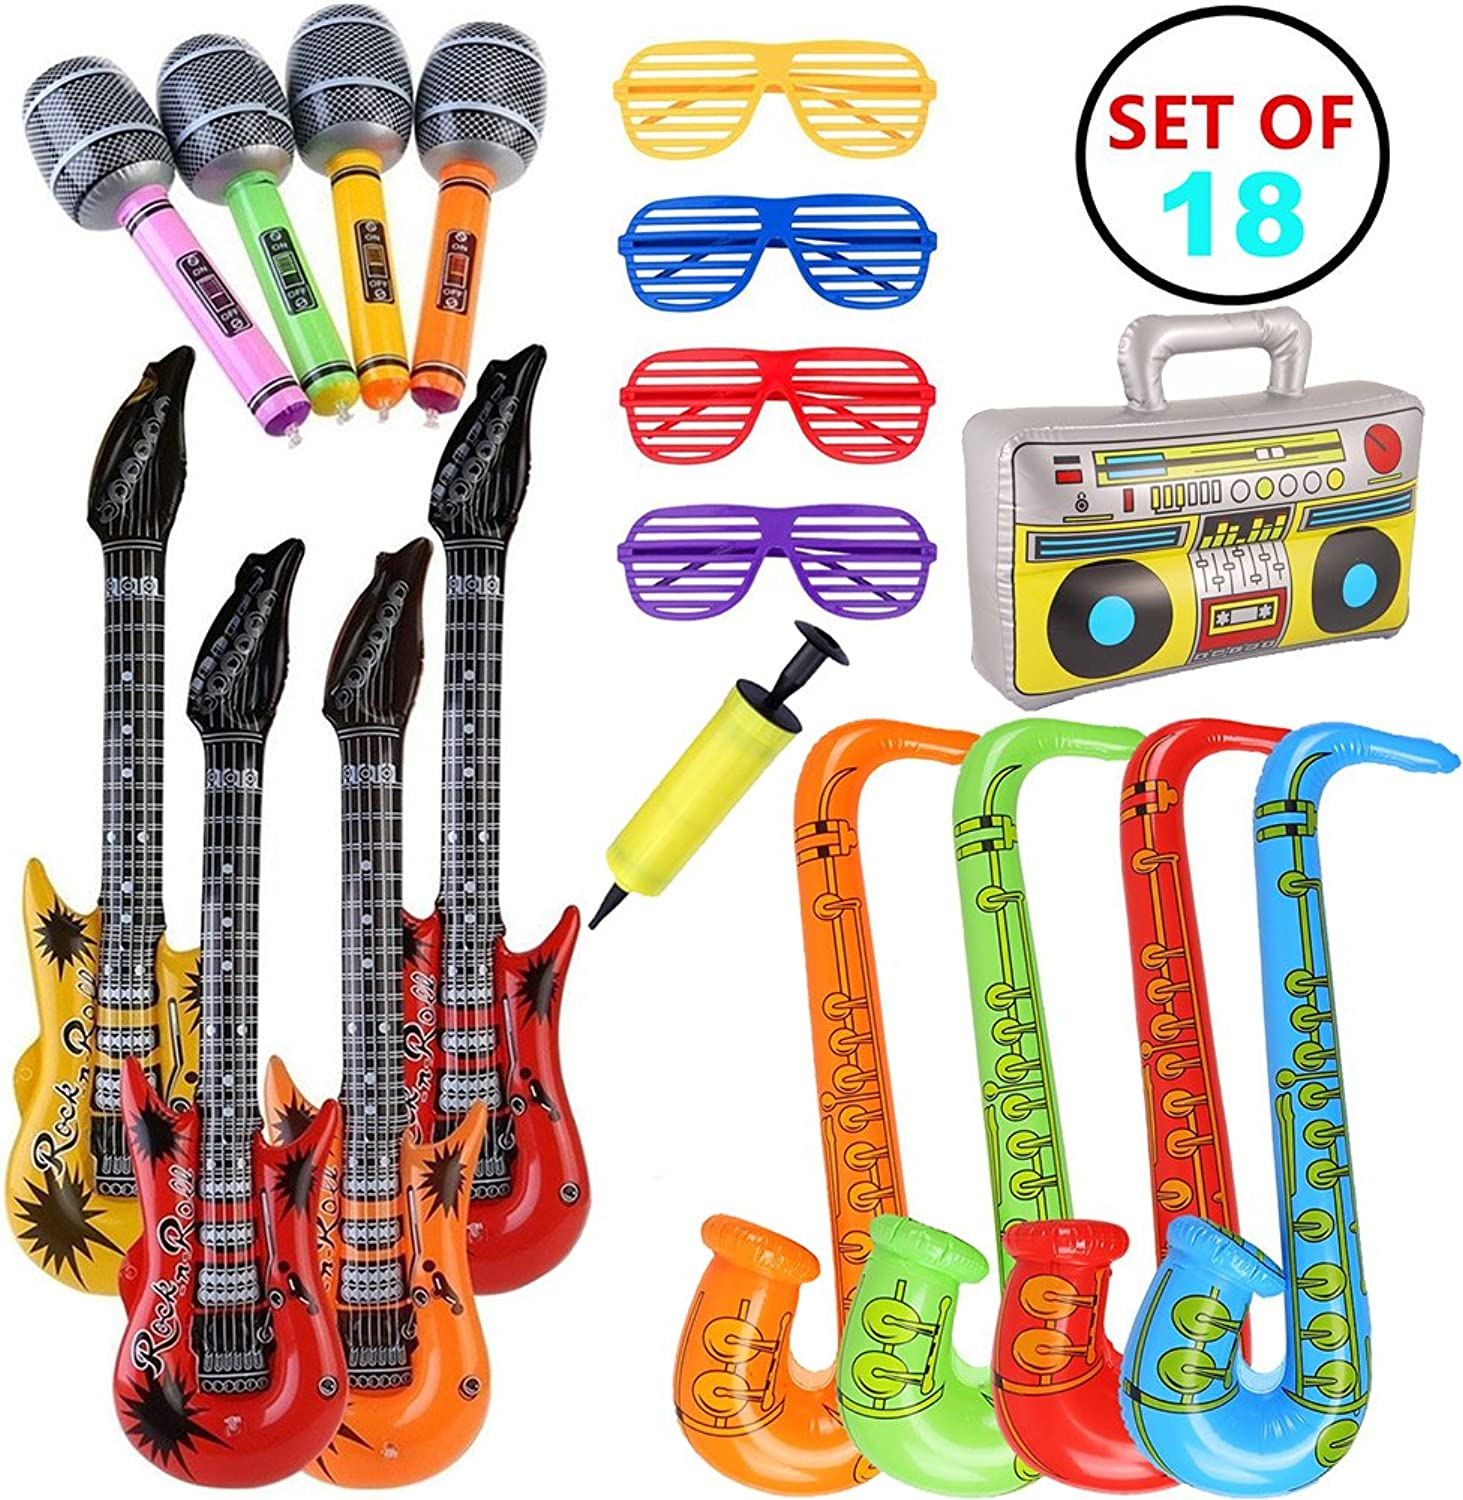 VN Store 18pcs Inflatable Guitar Saxophone Microphone for Party Bags Decorations Rock Star Set Inflatable Party Props (Random color)